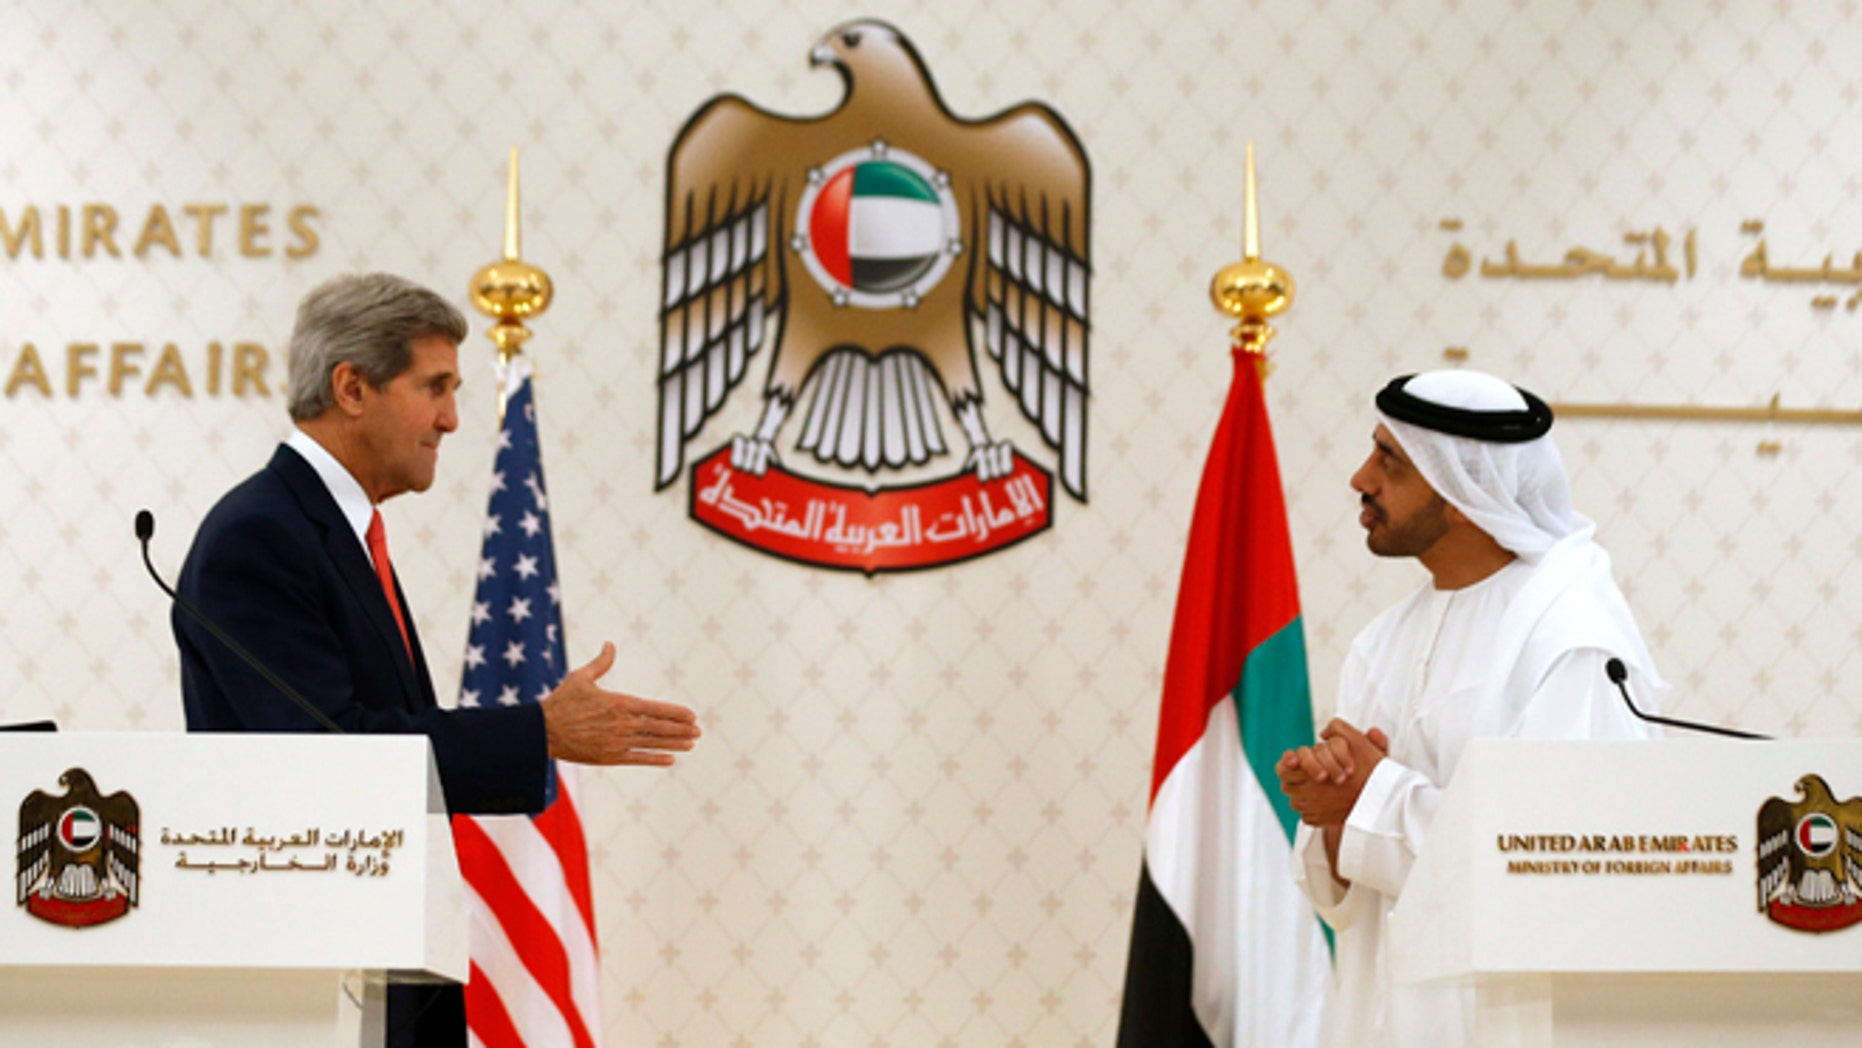 Nov. 11, 2013: U.S. Secretary of State John Kerry reaches out to shake hands with U.A.E. Foreign Minister Abdullah bin Zayed Al Nahyan in Abu Dhabi. The U.A.E. is one of the biggest buyers of U.S. arms.